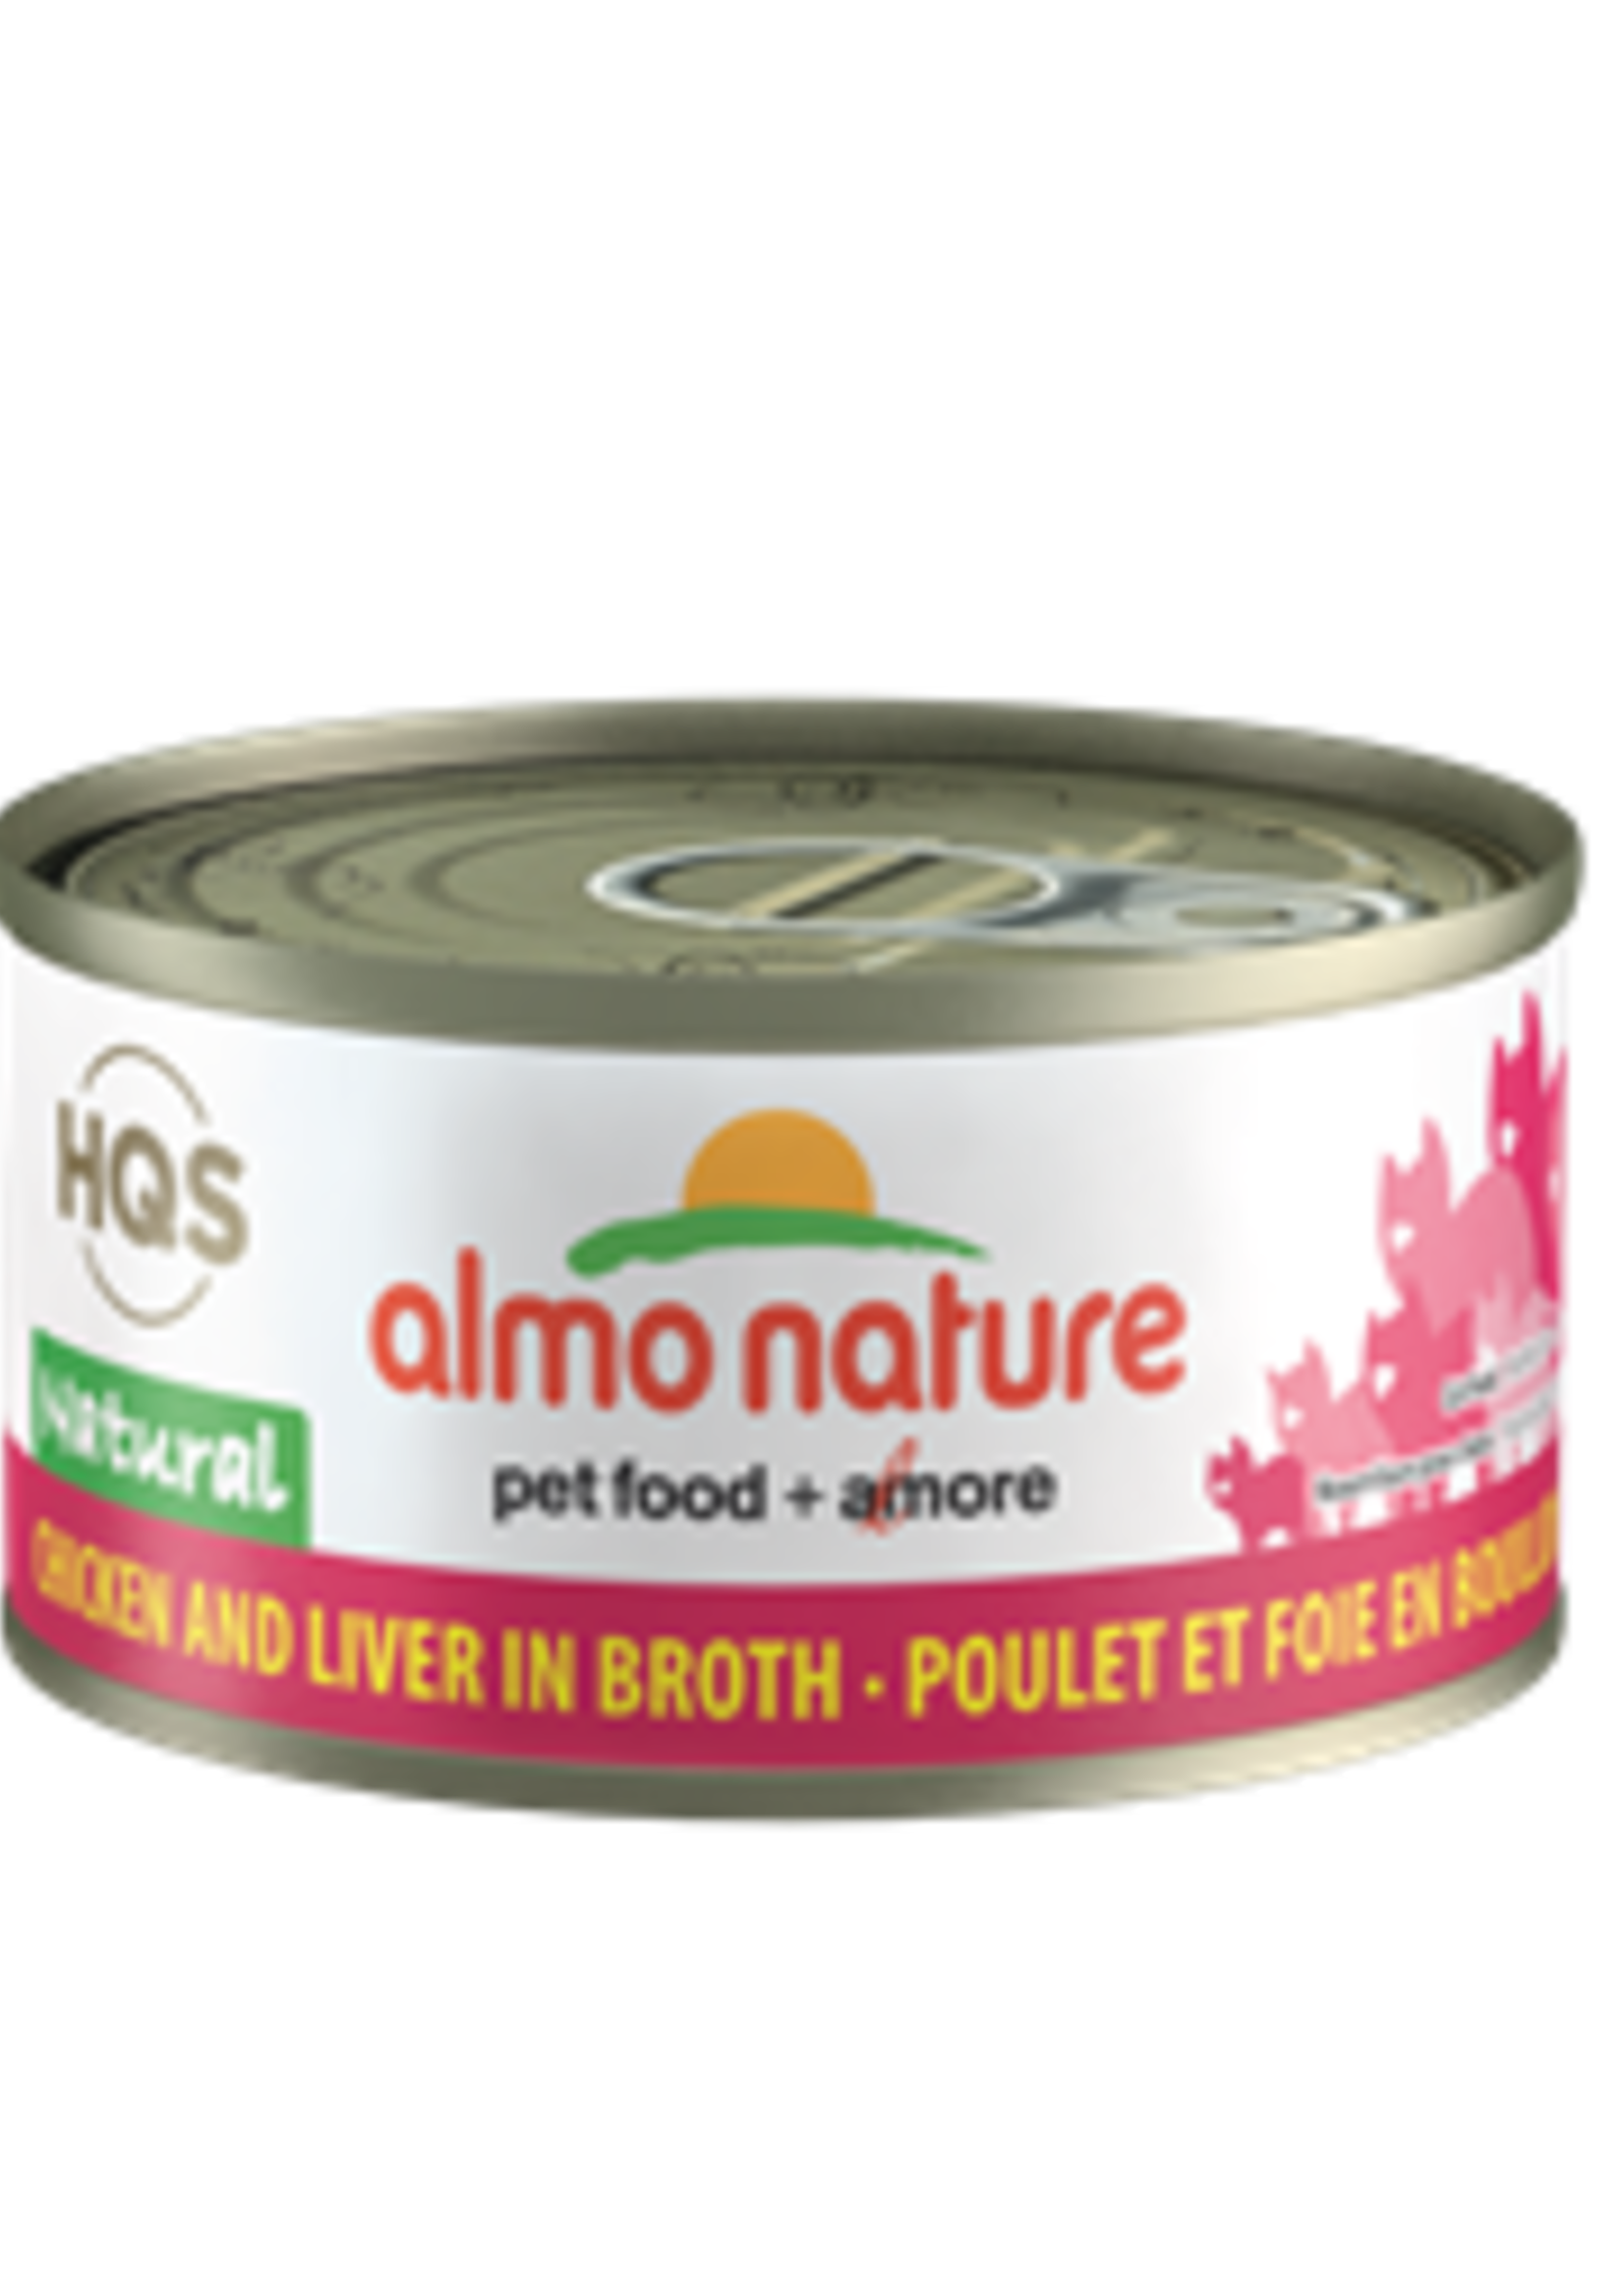 Almo Nature© Almo Nature HQS Natural Chicken and Liver in Broth 70g